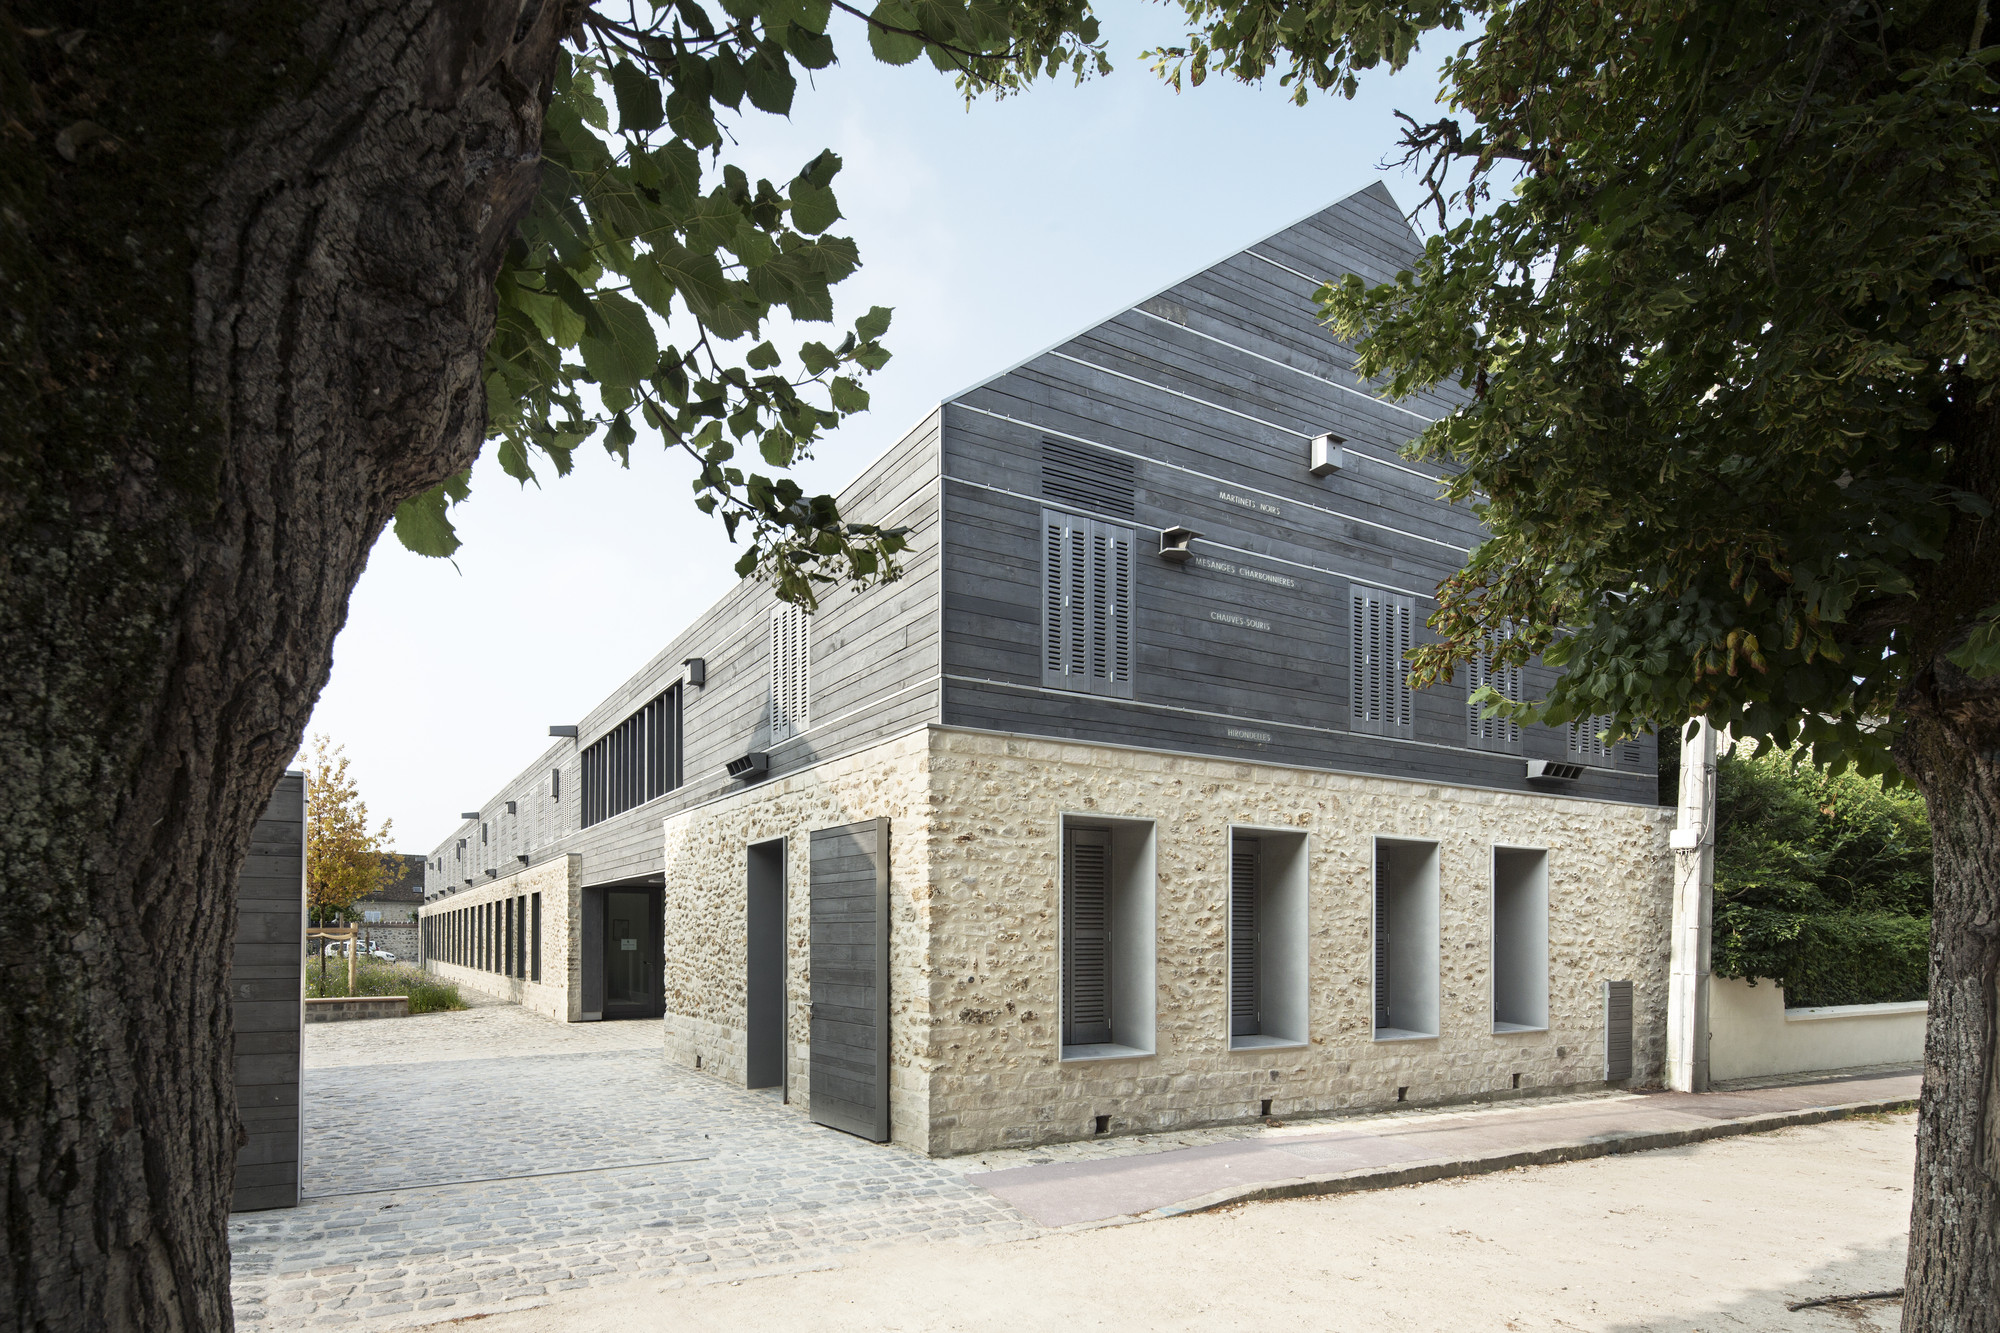 Information Centre for the Parc Naturel Régional Du Gâtinais / JOLY&LOIRET, Courtesy of JOLY&LOIRET